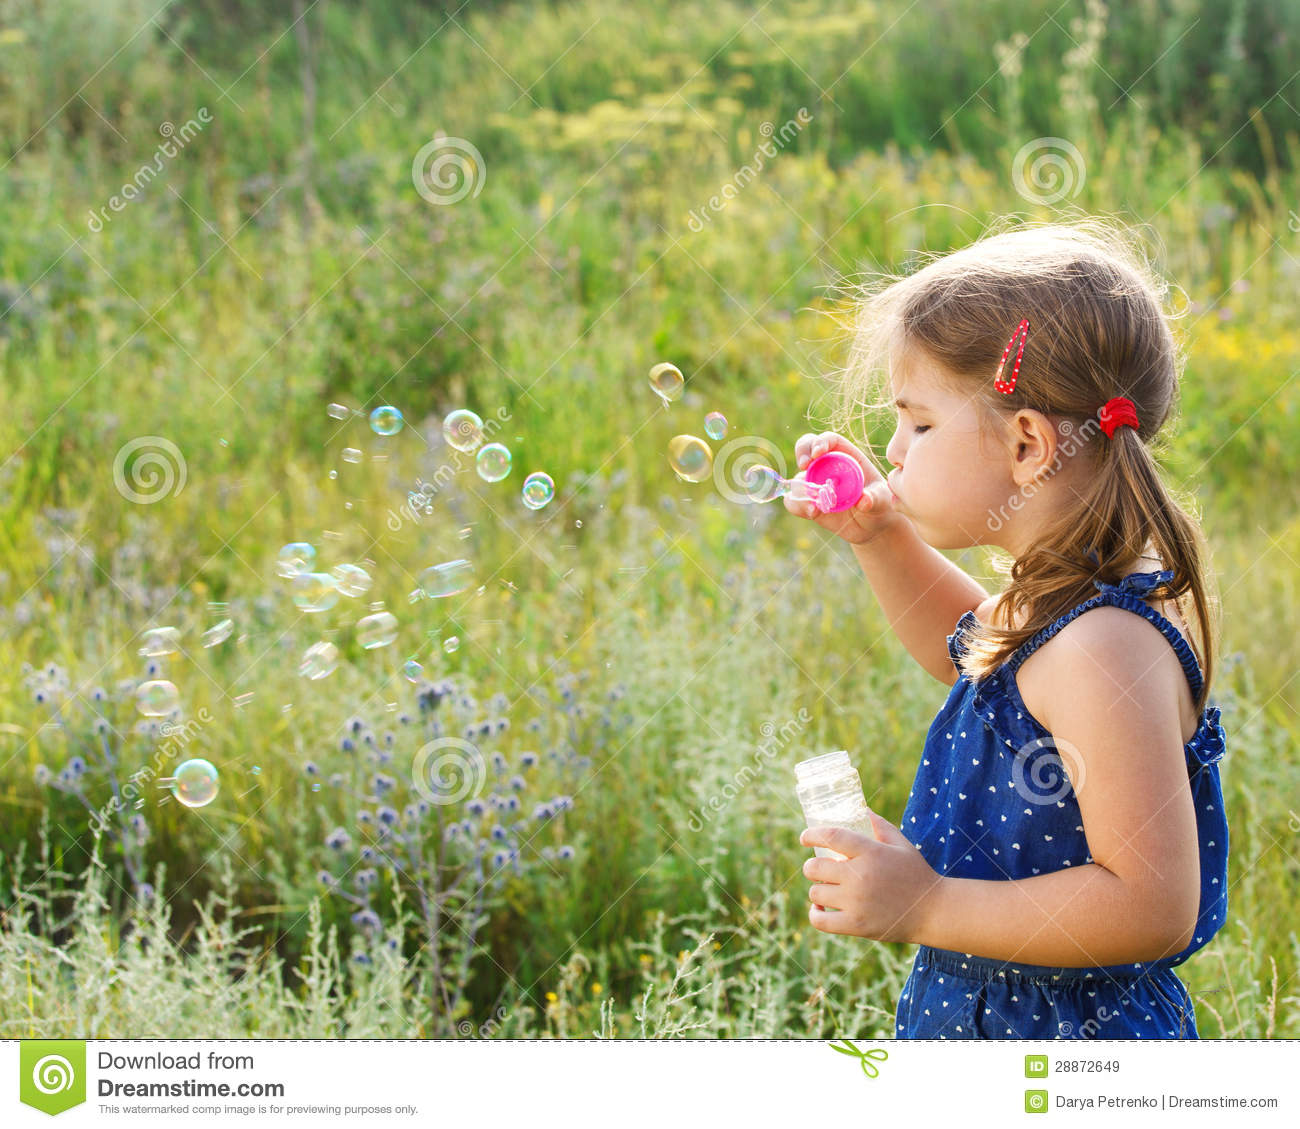 Cute Little Girl Playing Bubble Wallpaper Little Cute Girl Blowing Soap Bubbles Royalty Free Stock